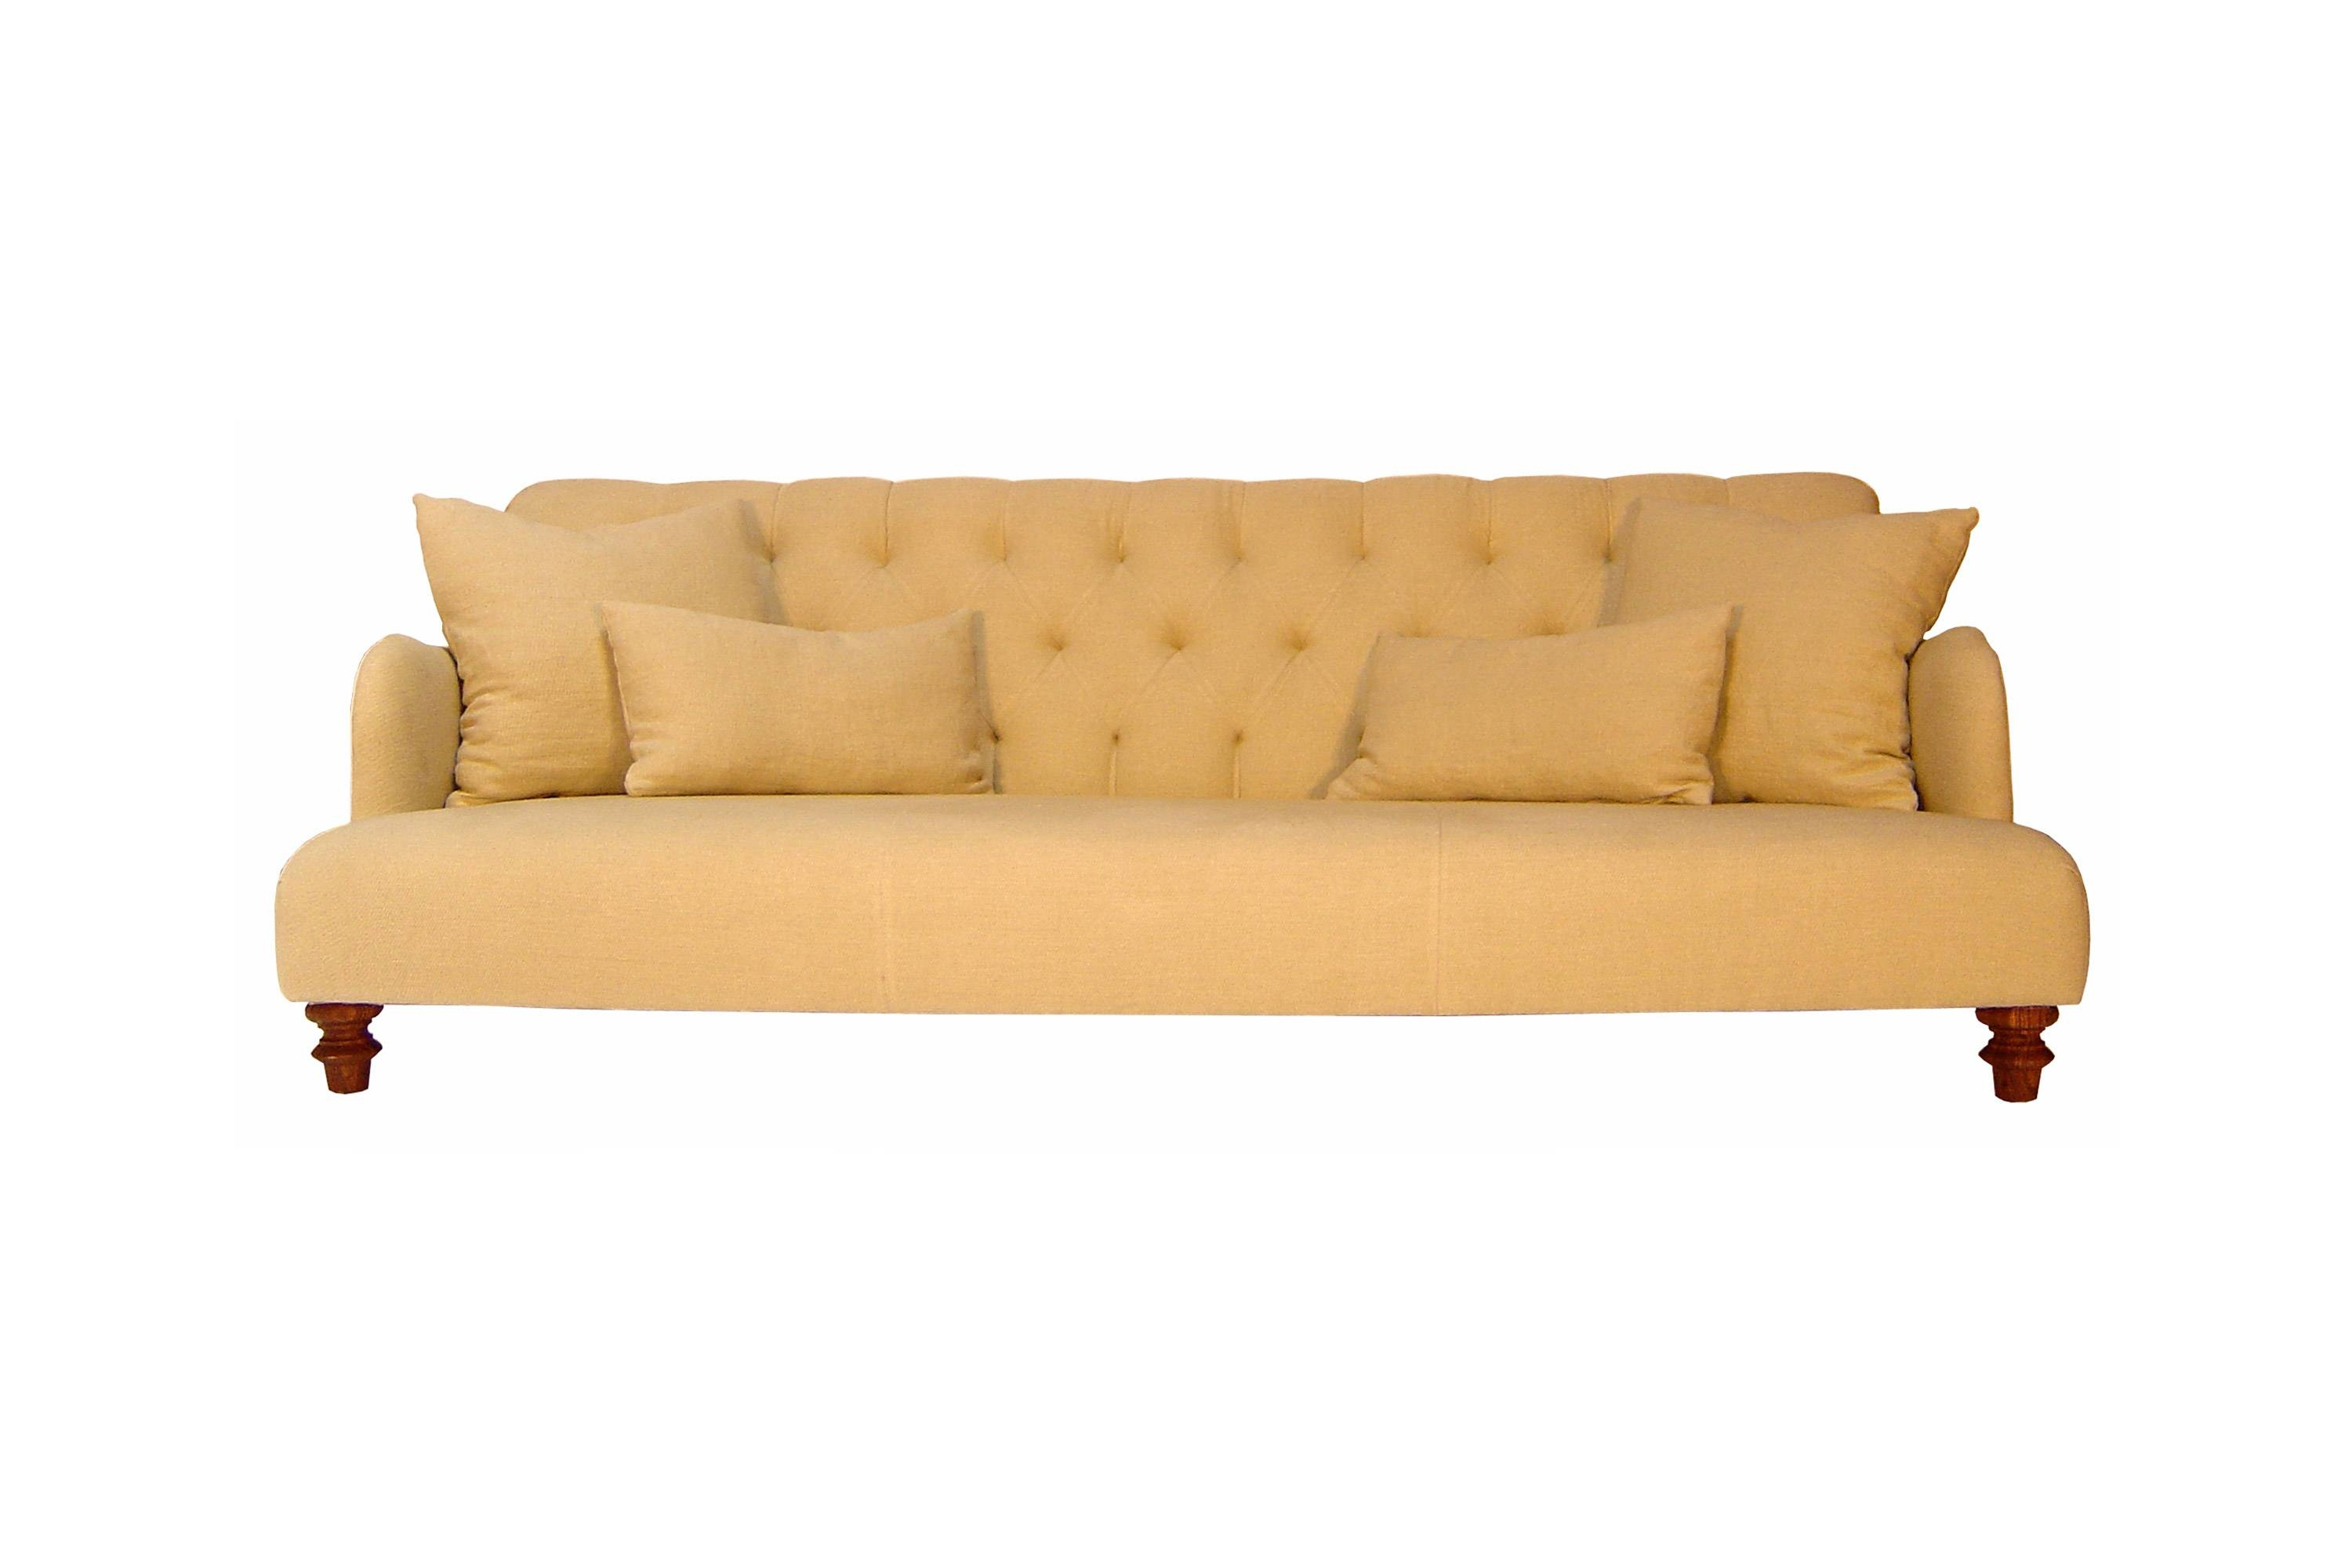 30 inspirations of funky sofas for sale for Funky furniture